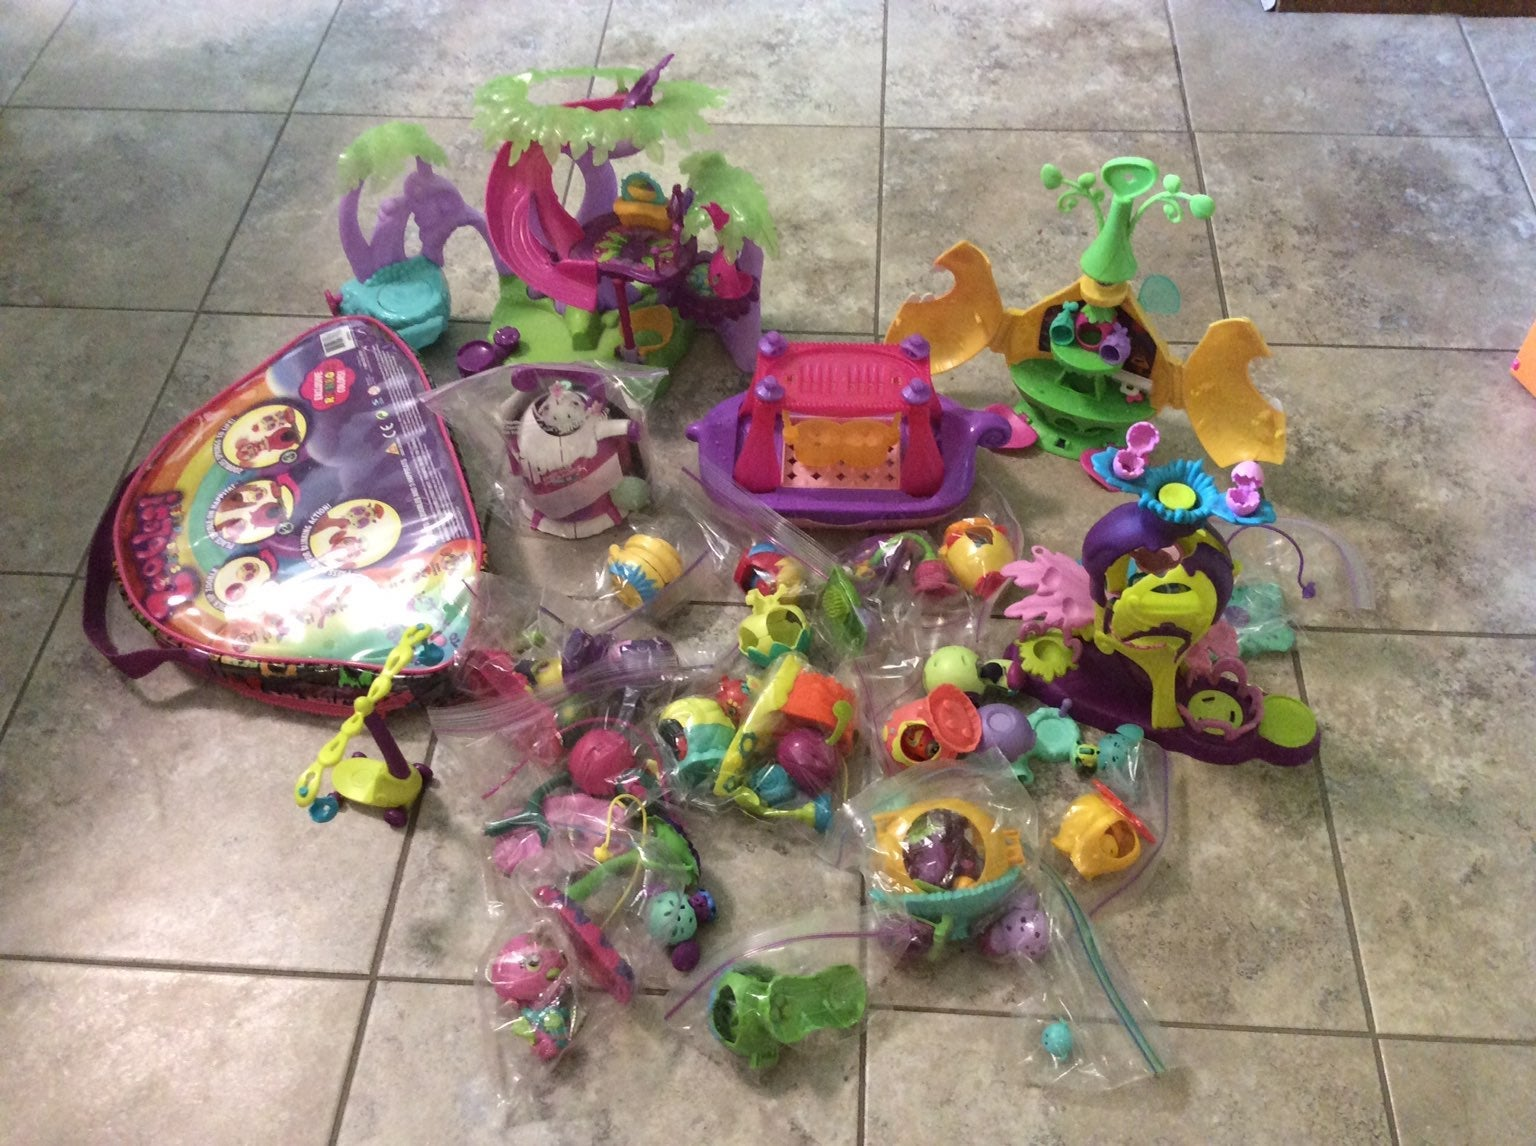 Zoobles playsets